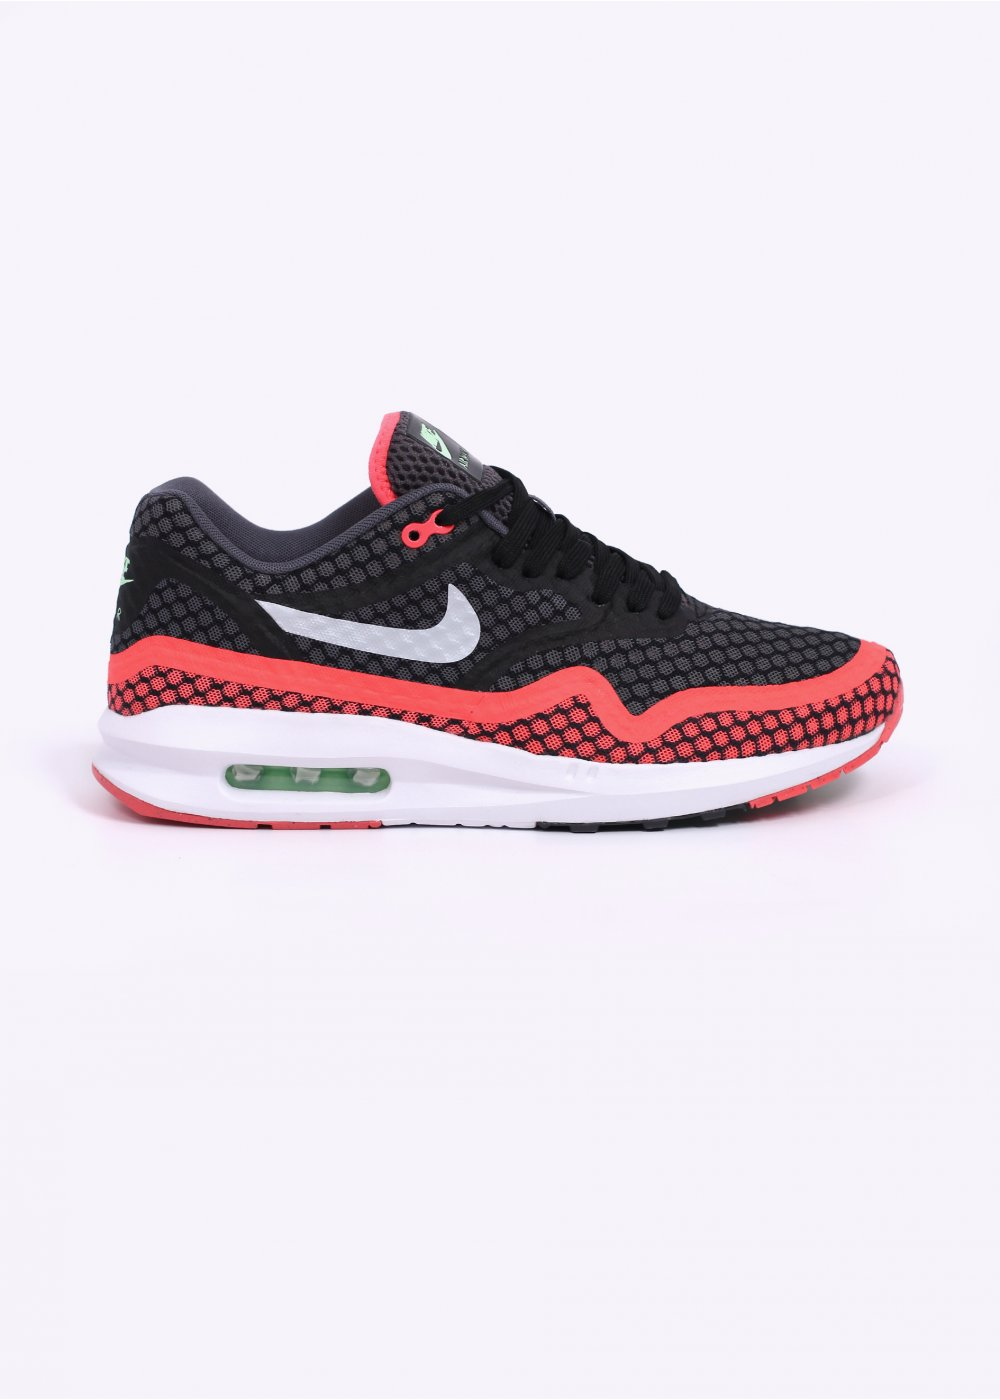 pretty nice 704a9 3b880 Air Max Lunar 1 BR Trainers - Black   Pure Platinum   Hot Lava